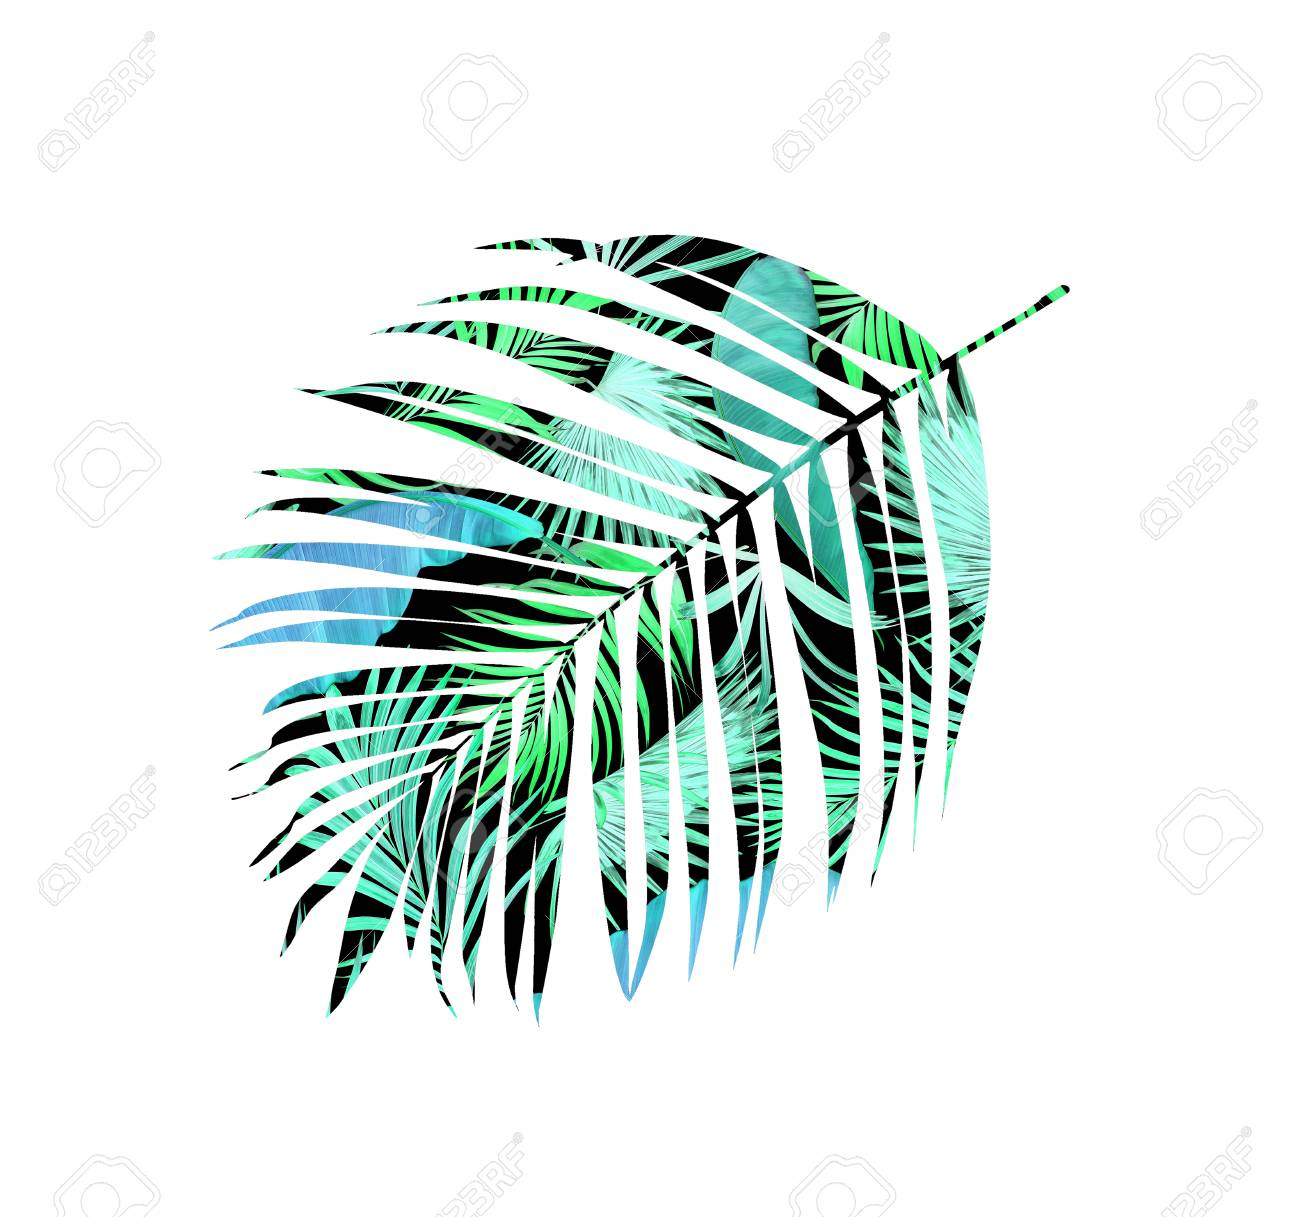 double exposure green leaves of palm tree background